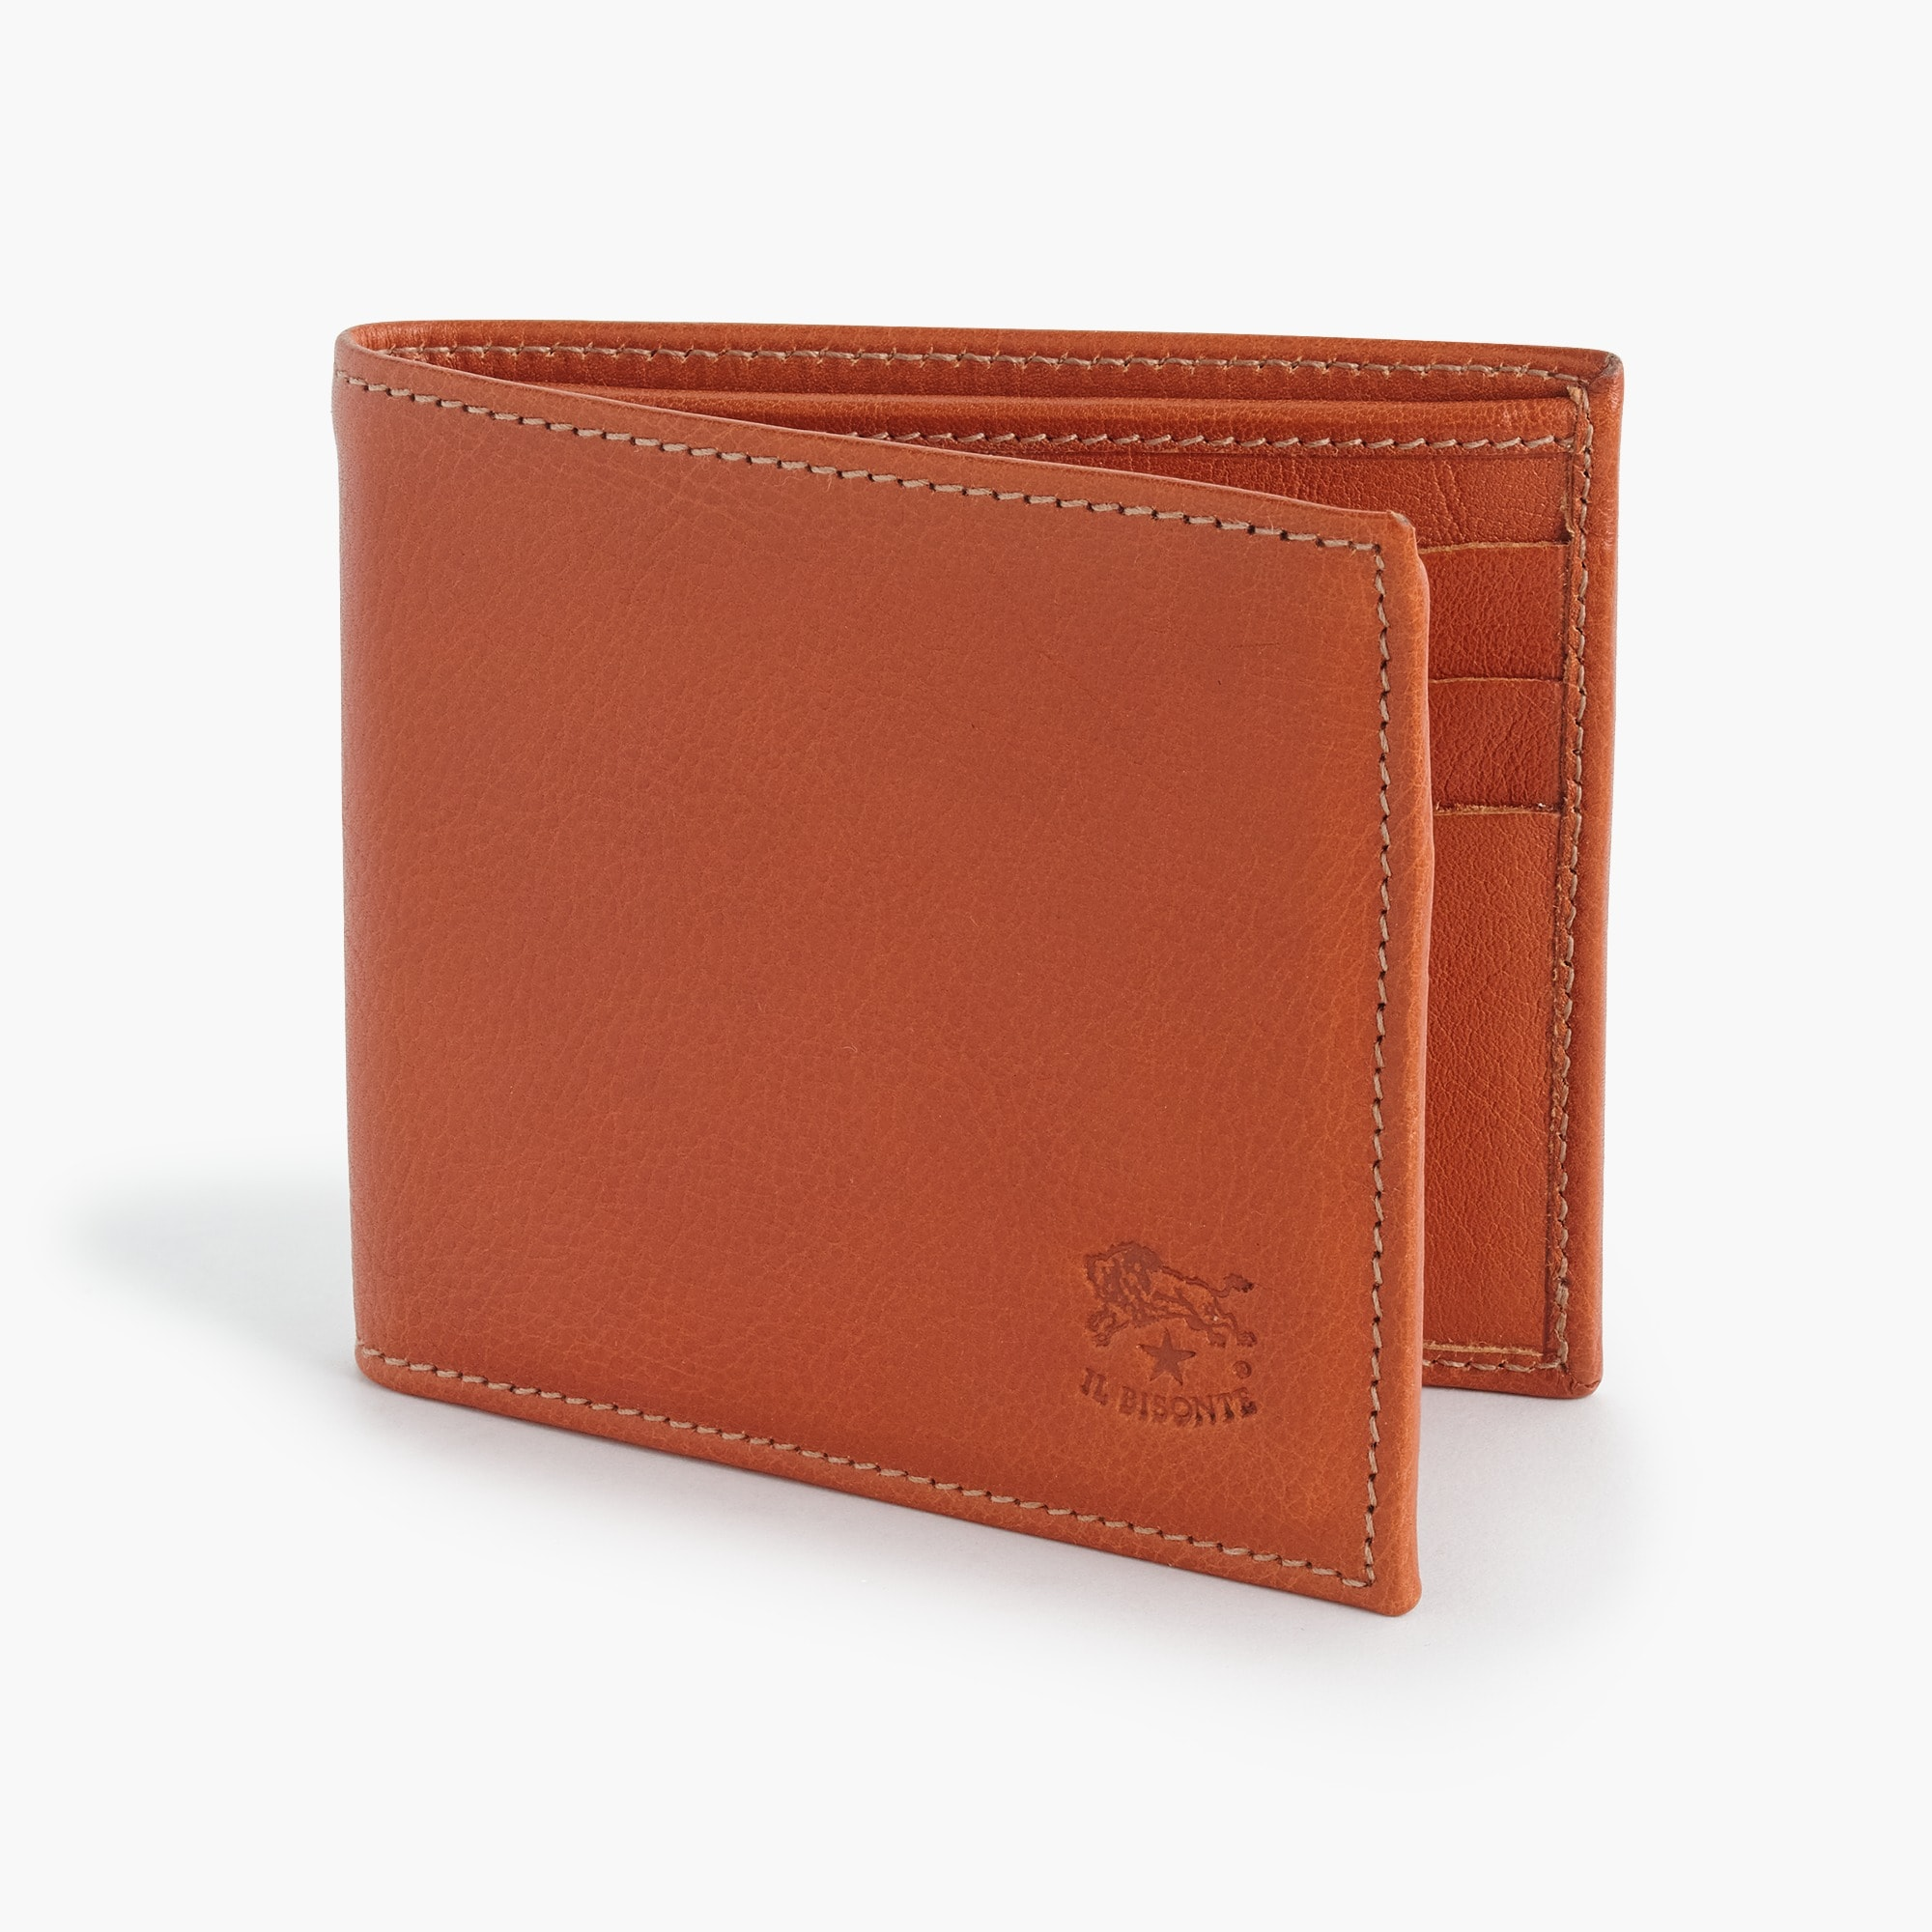 IL Bisonte® leather card wallet men accessories c